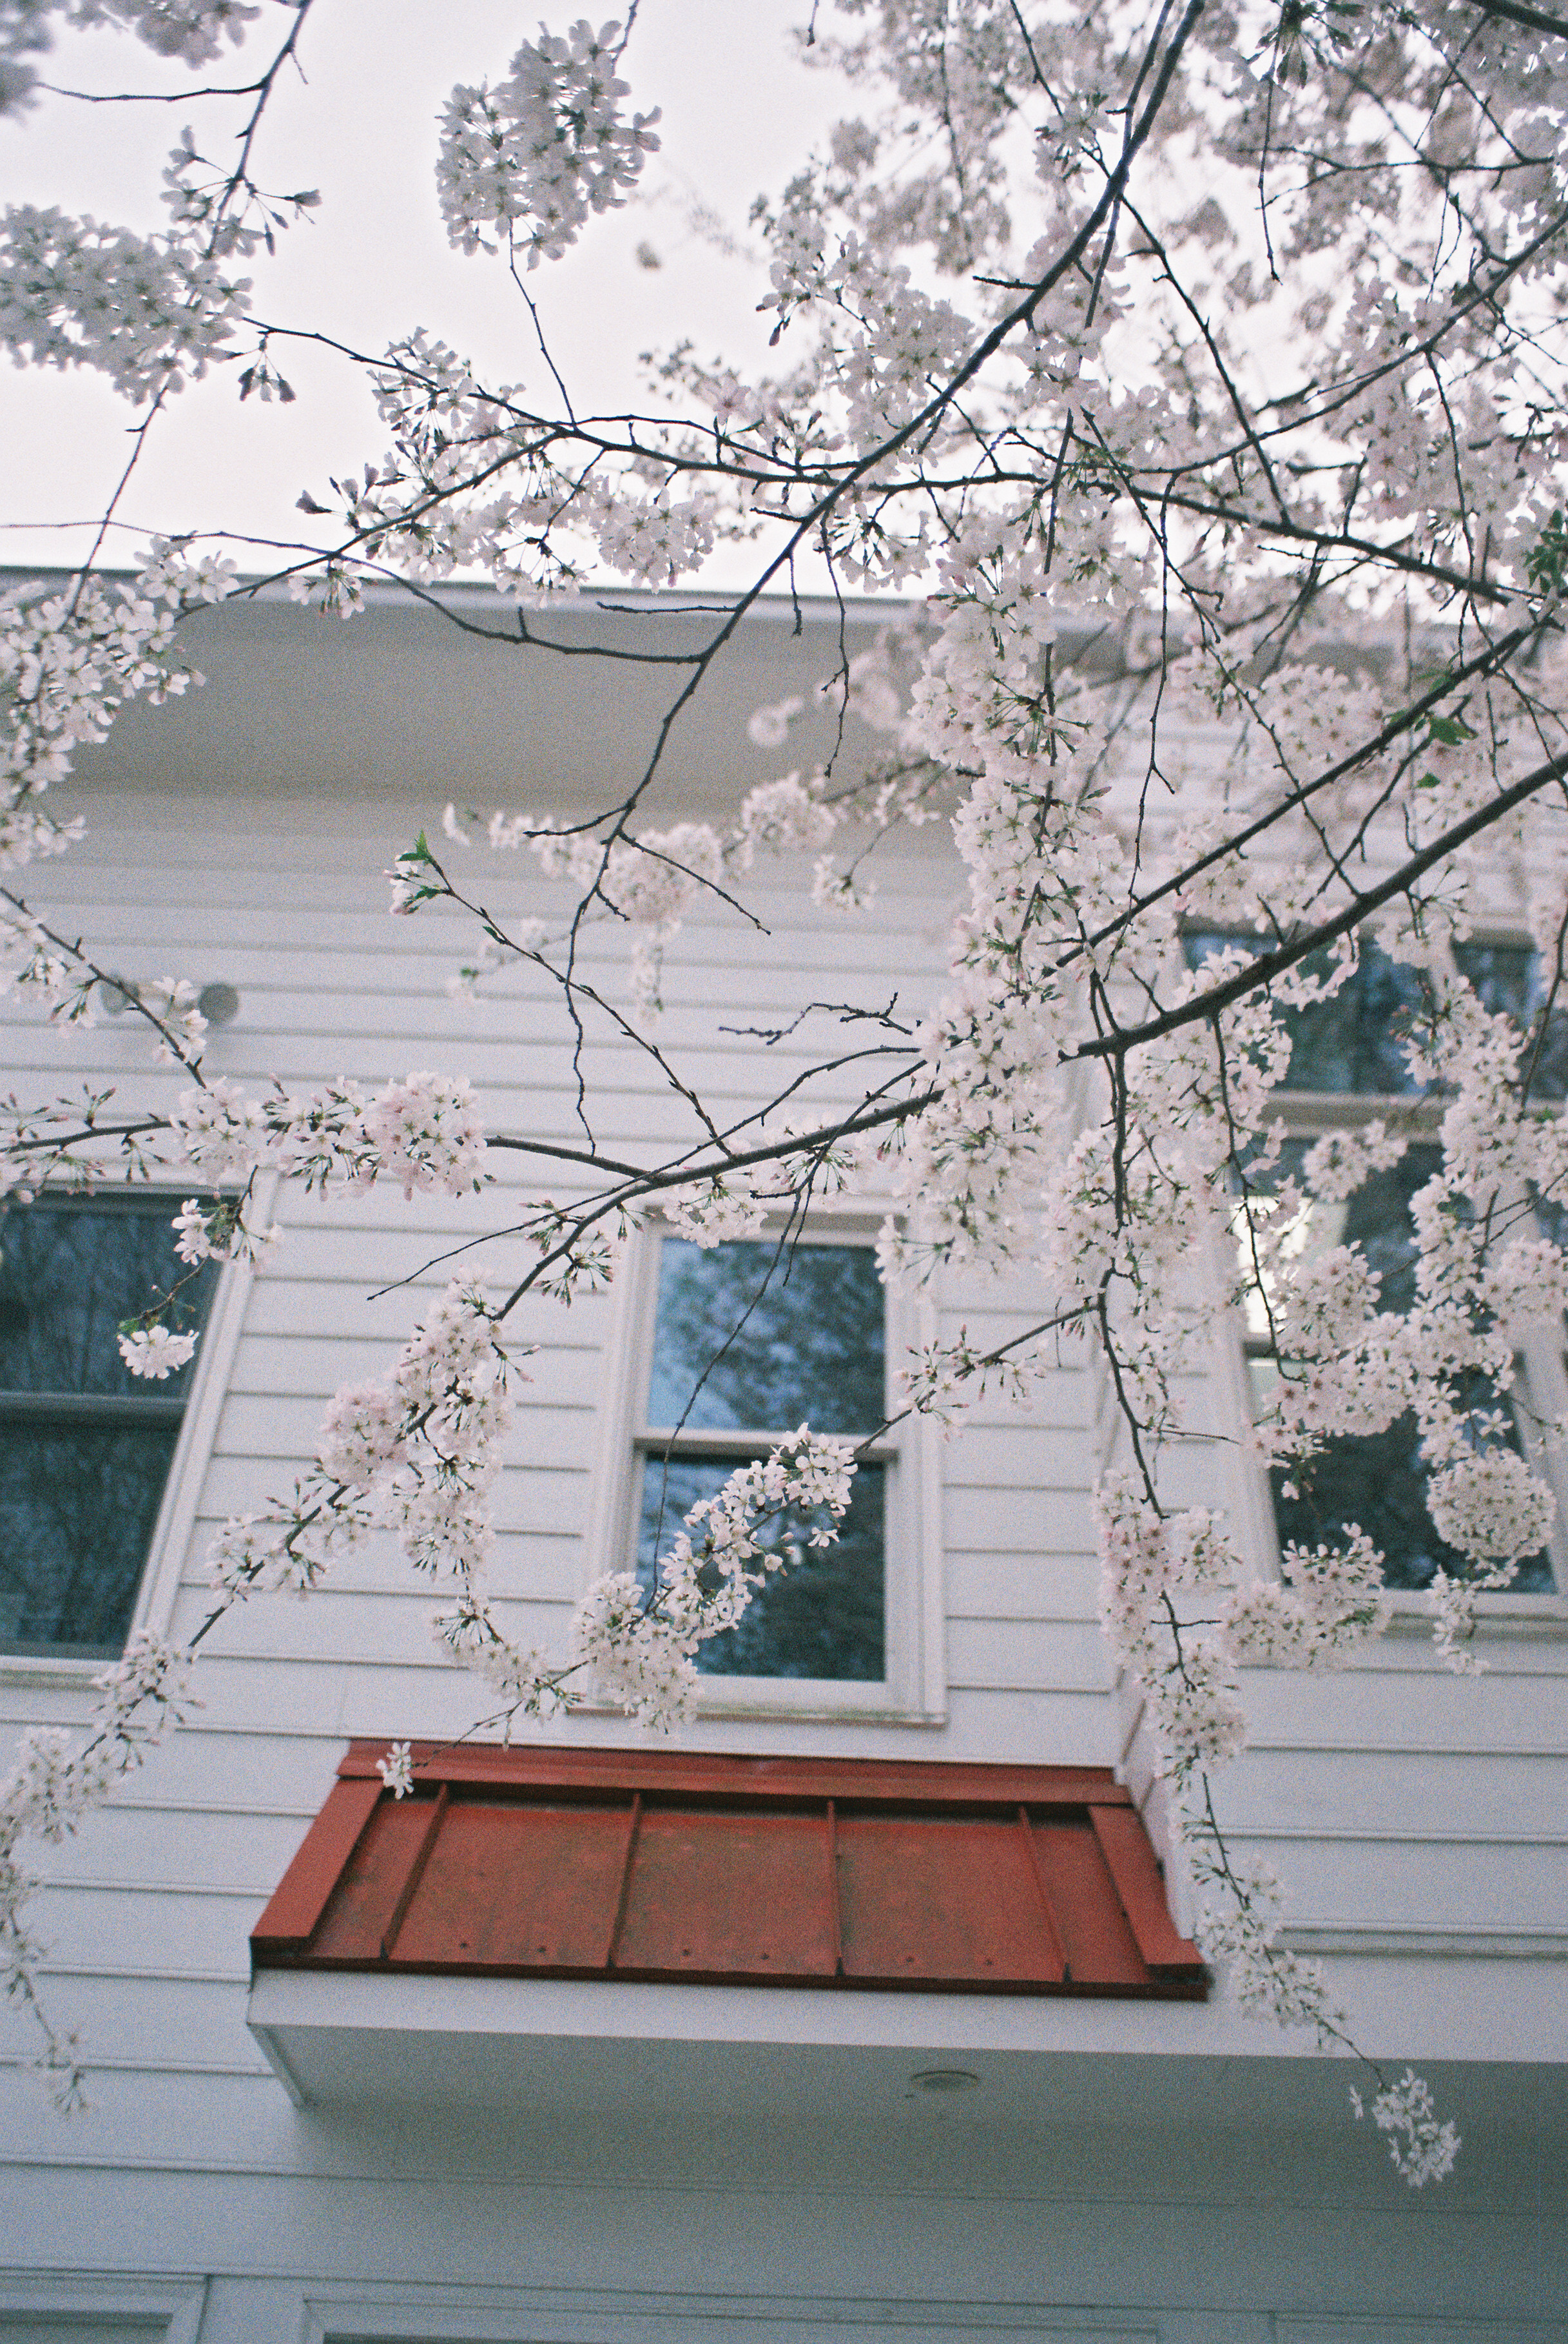 shot with ektar 100 35mm film on almost-exactly-this day last year